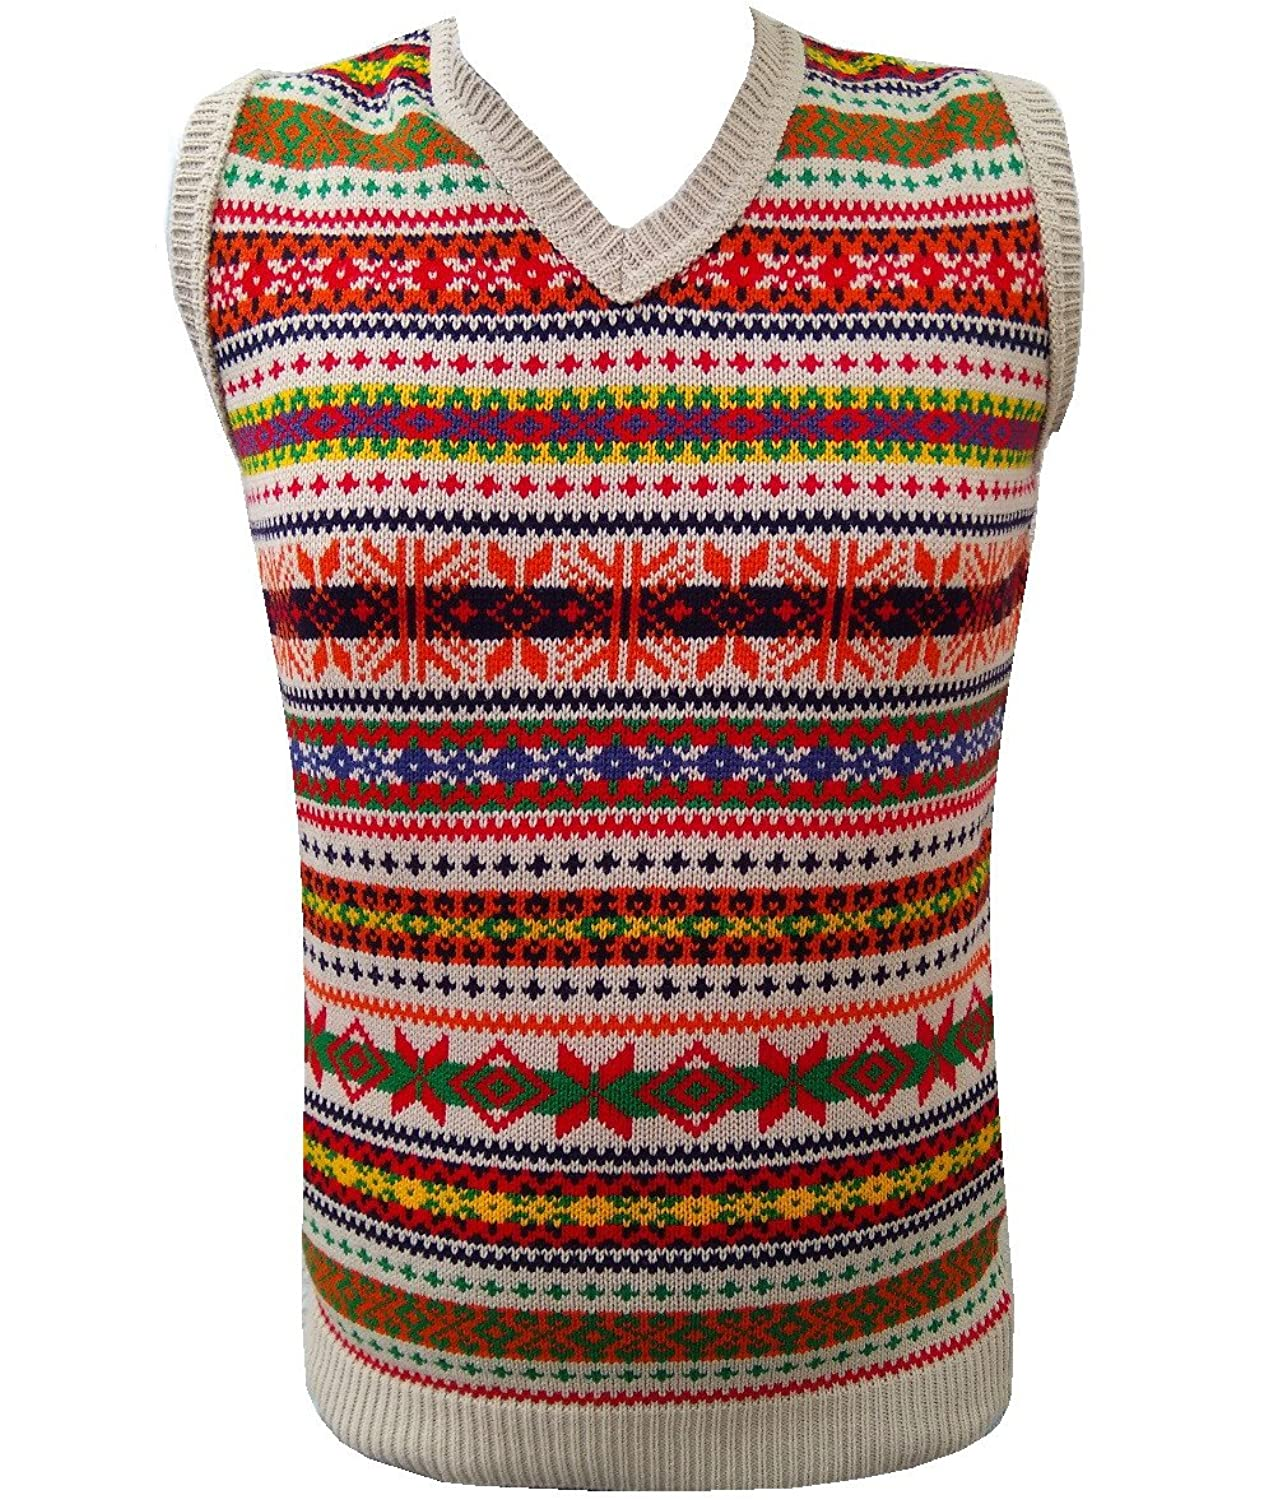 1920s Fashion for Men London Knitwear Gallery Retro Vintage Knitwear Tanktop Sleeveless Golf Sweater £19.99 AT vintagedancer.com